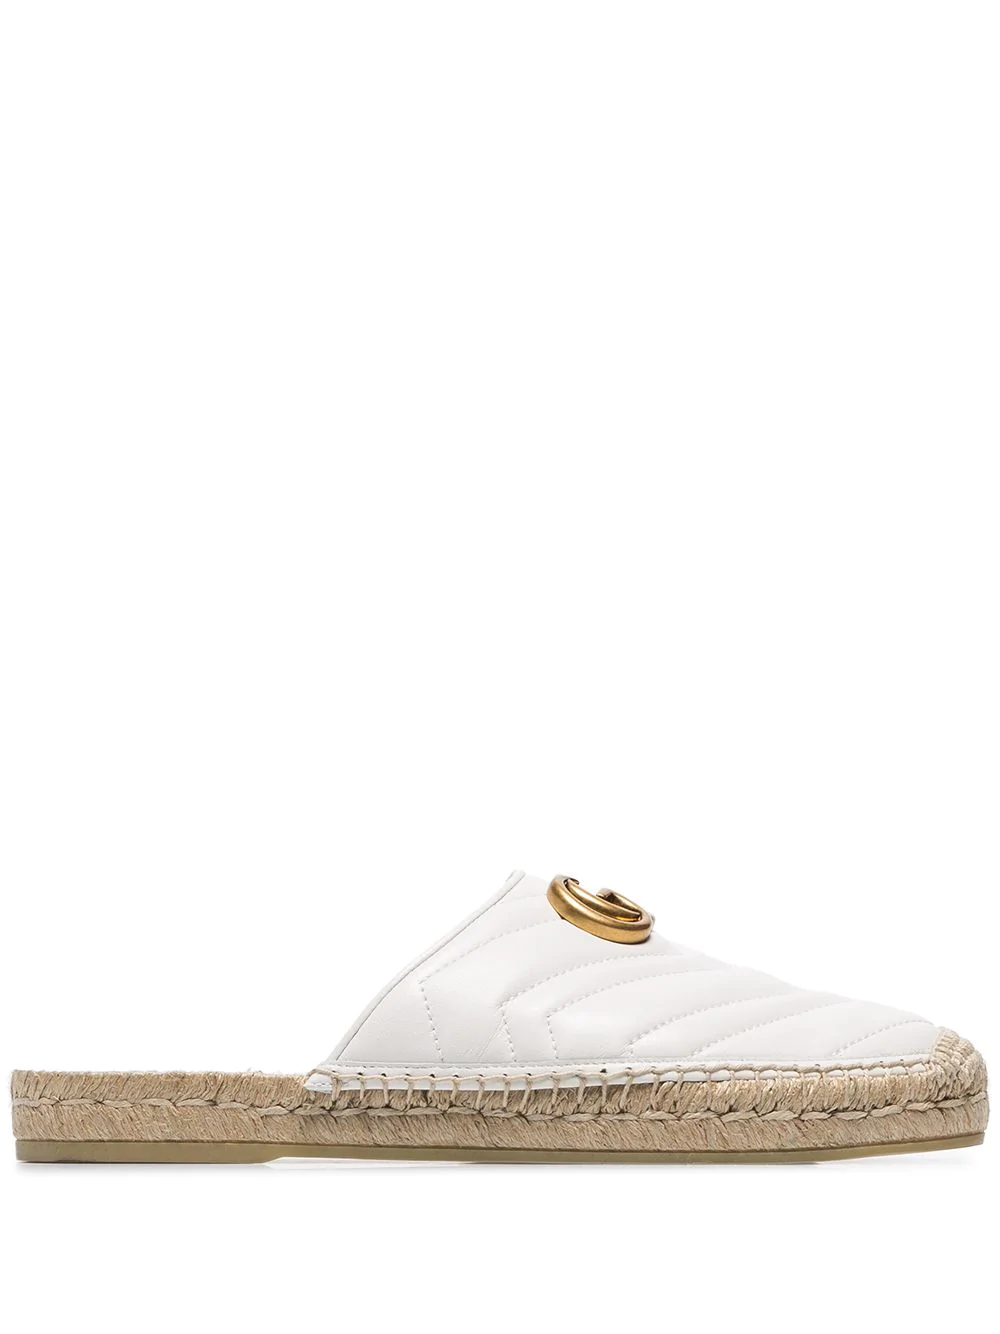 666d2e2f8ae Gucci White Pilar 50 Backless Leather Espadrilles